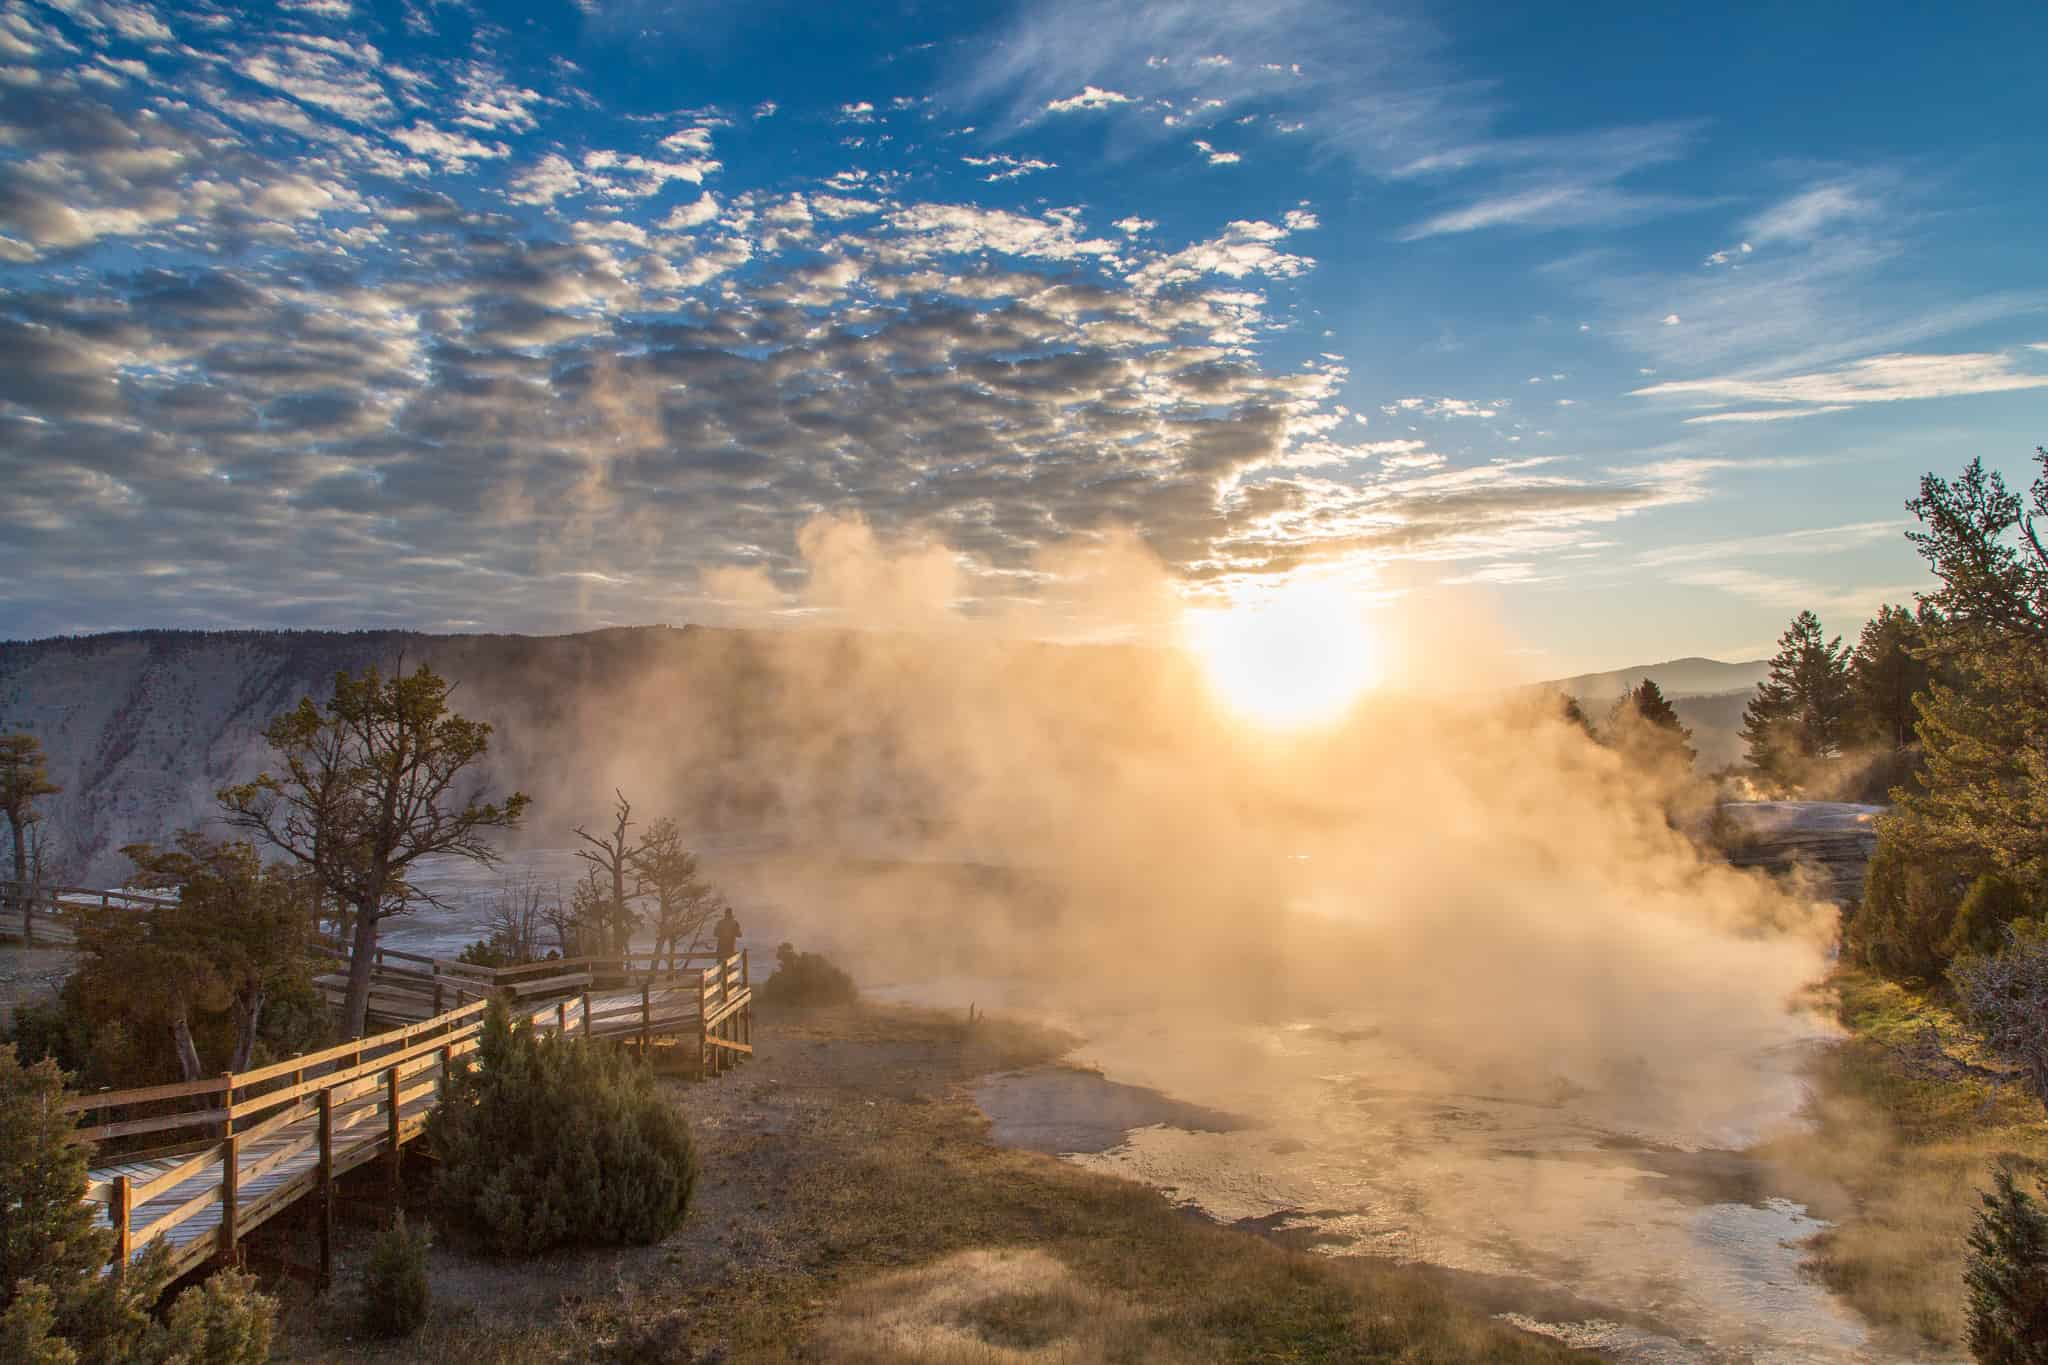 Sunrise, Upper Terrace, Mammoth Hot Springs